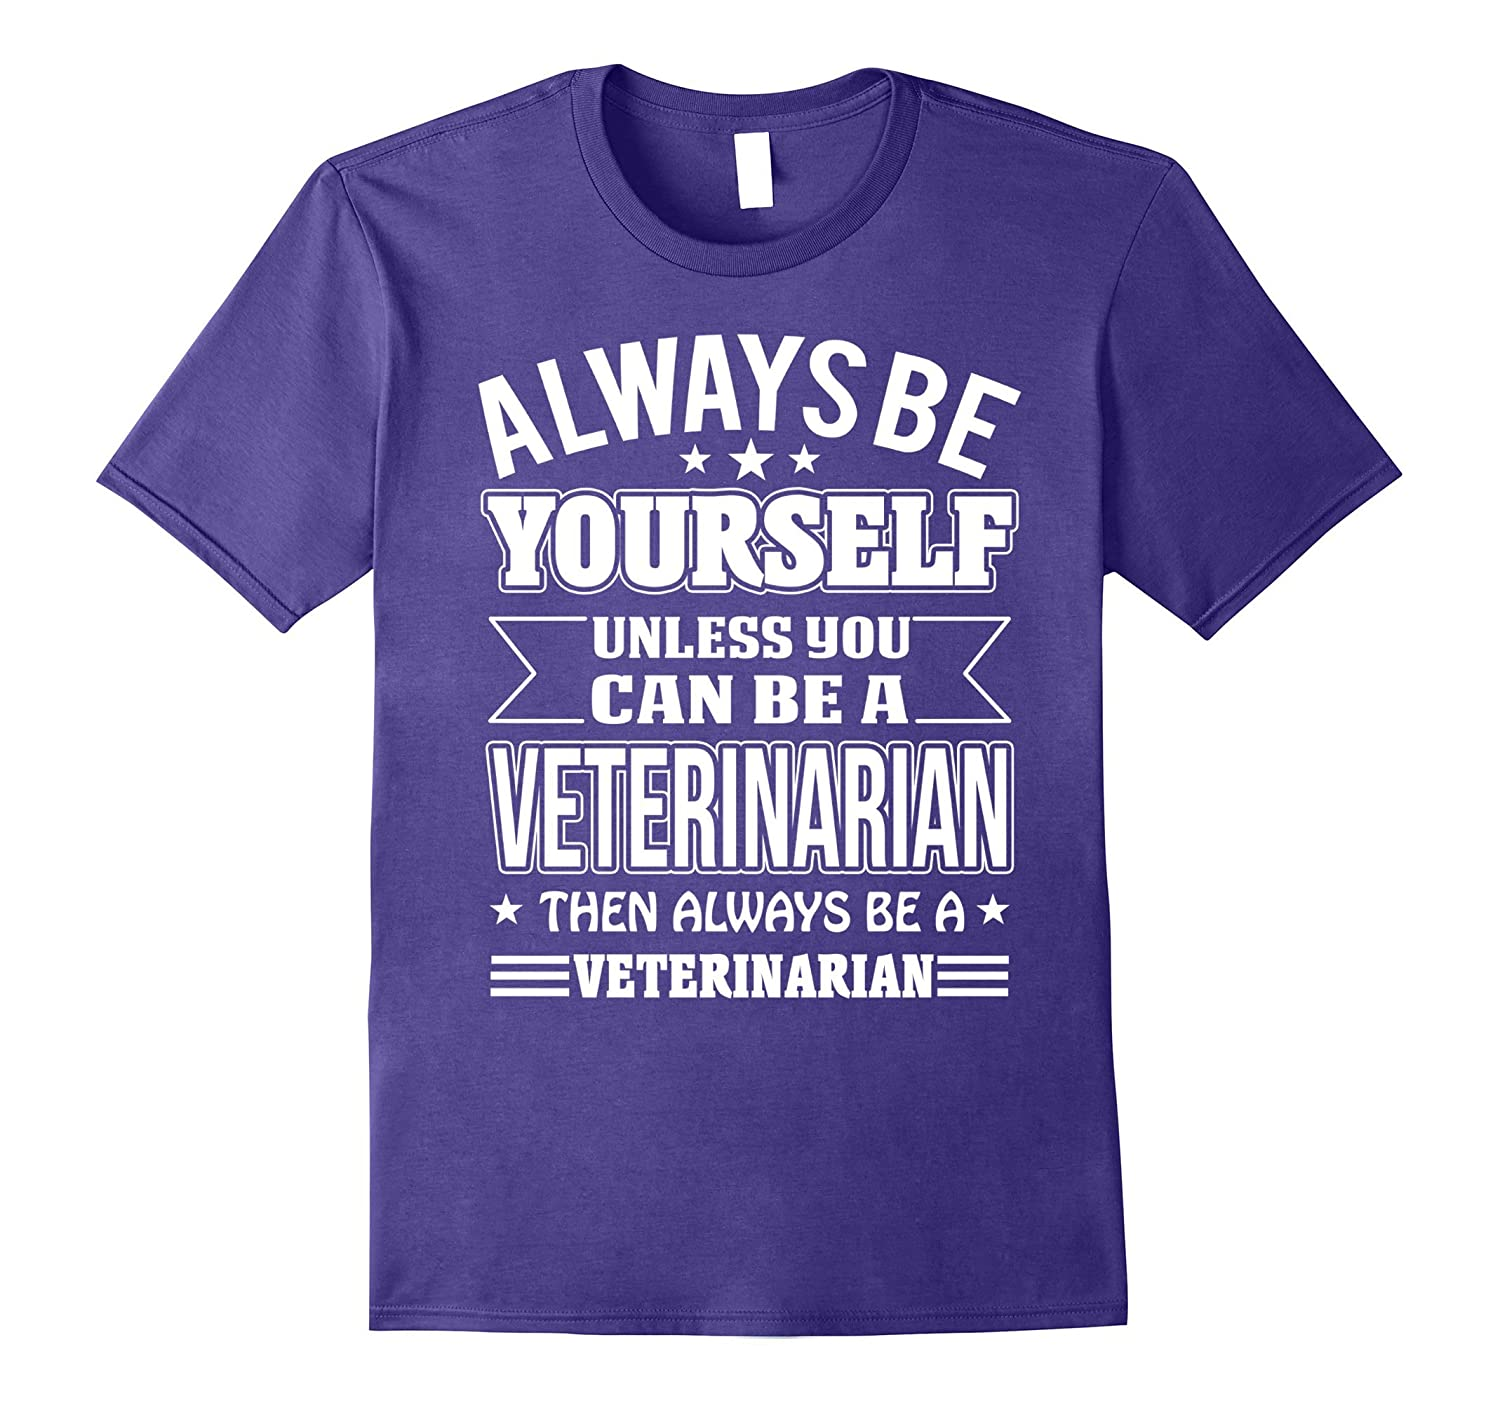 Be A Veterinarian T-shirt Always Be Yourself Unless You Can-TJ